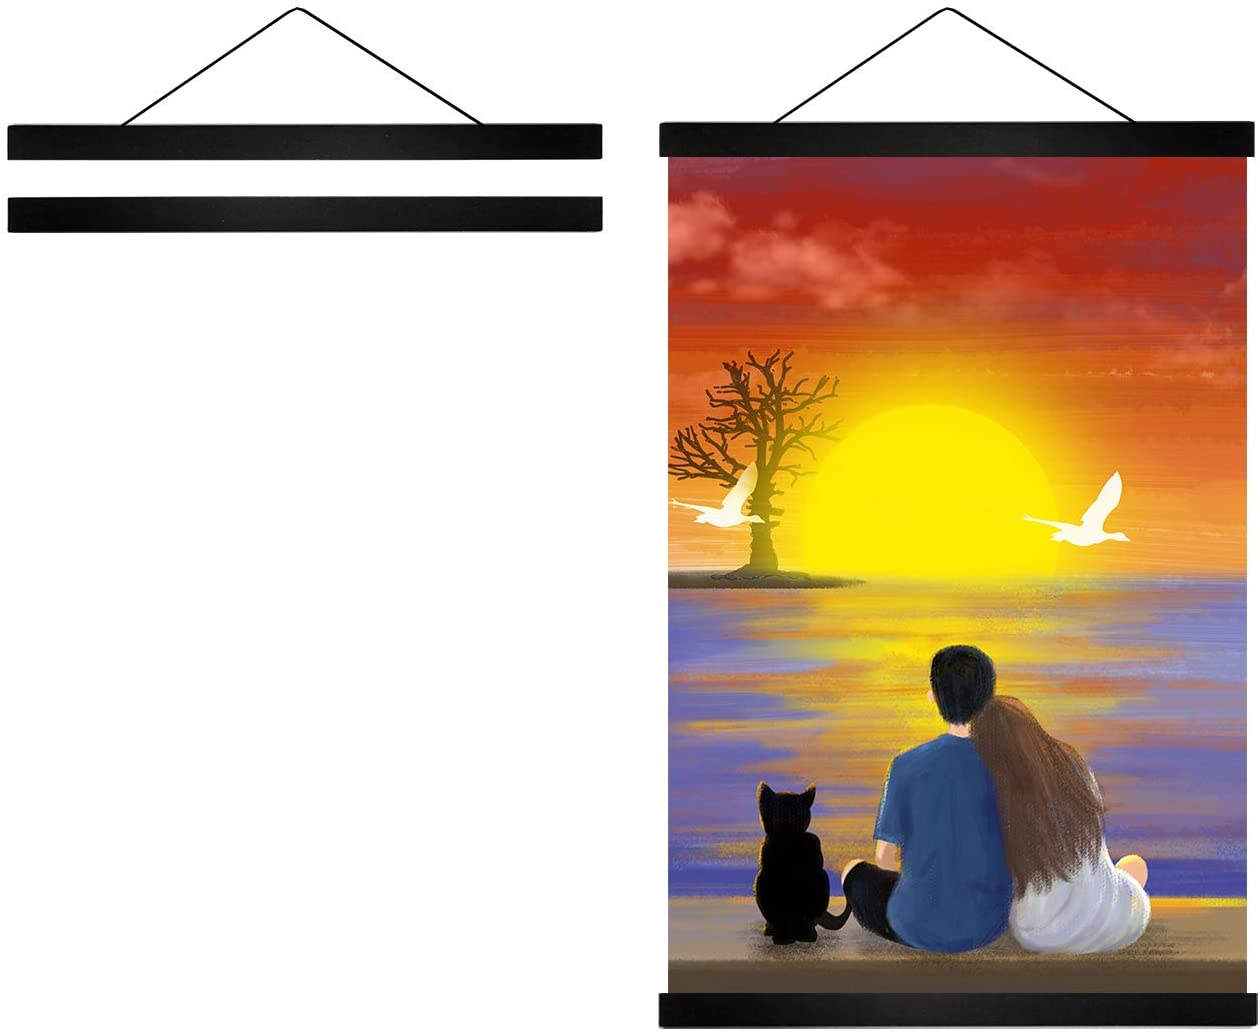 Radezon 8 inch Wide Magnetic Poster Hanger Frame, 8x10 8x20 8x11 Wood Frame for Posters, Prints, Photos, Pictures, Maps, Scrolls, and Artwork - Wall Hanging Wooden Frame